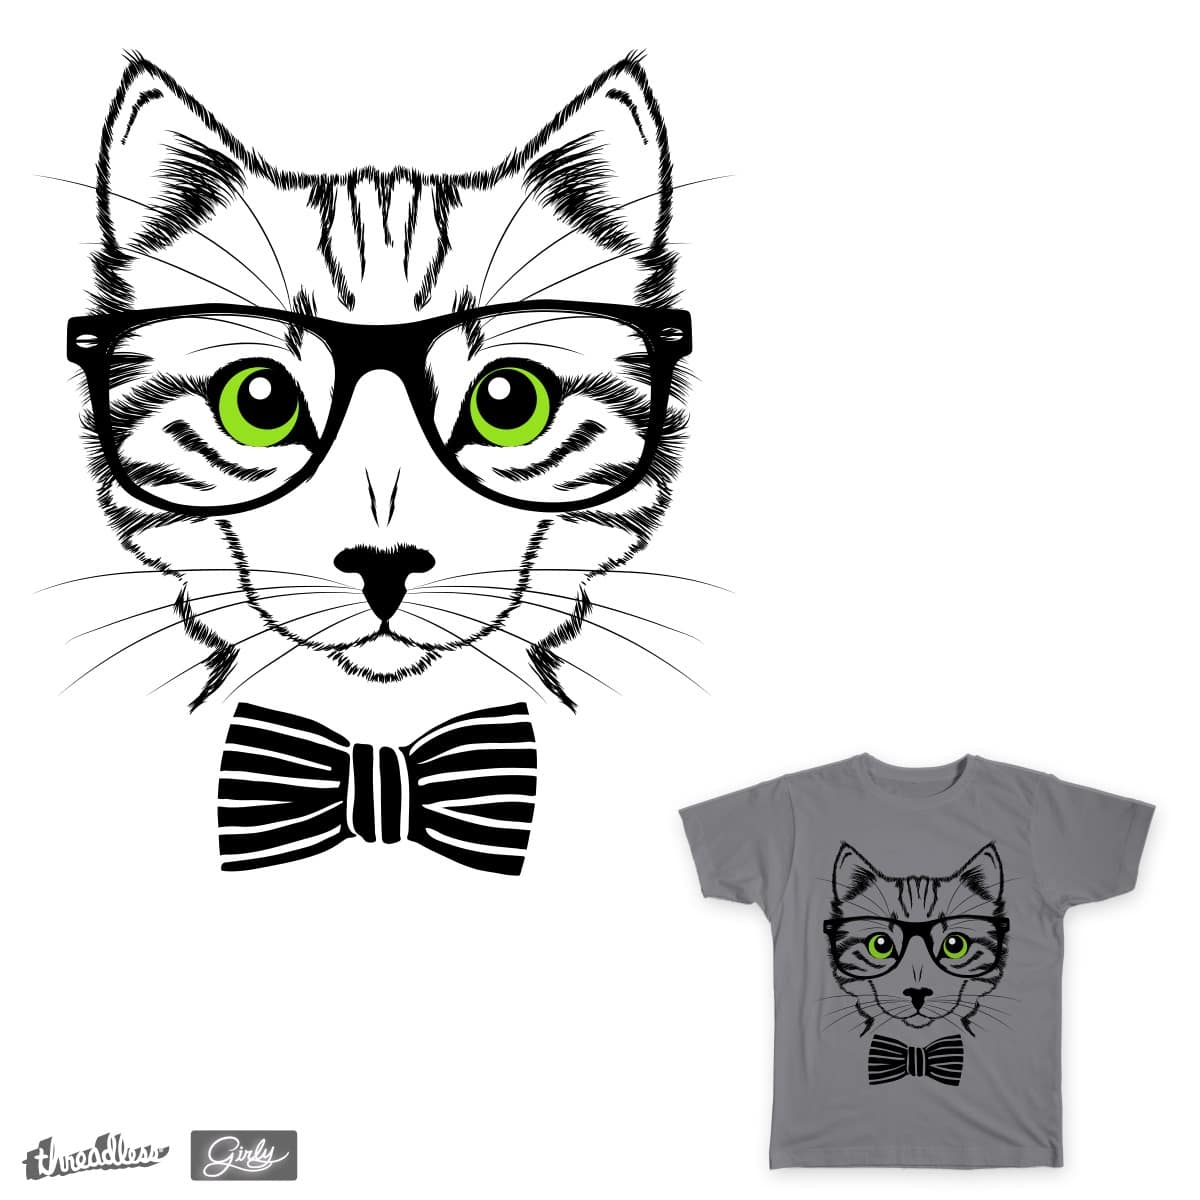 It's hip to be cat by freshlaundry on Threadless